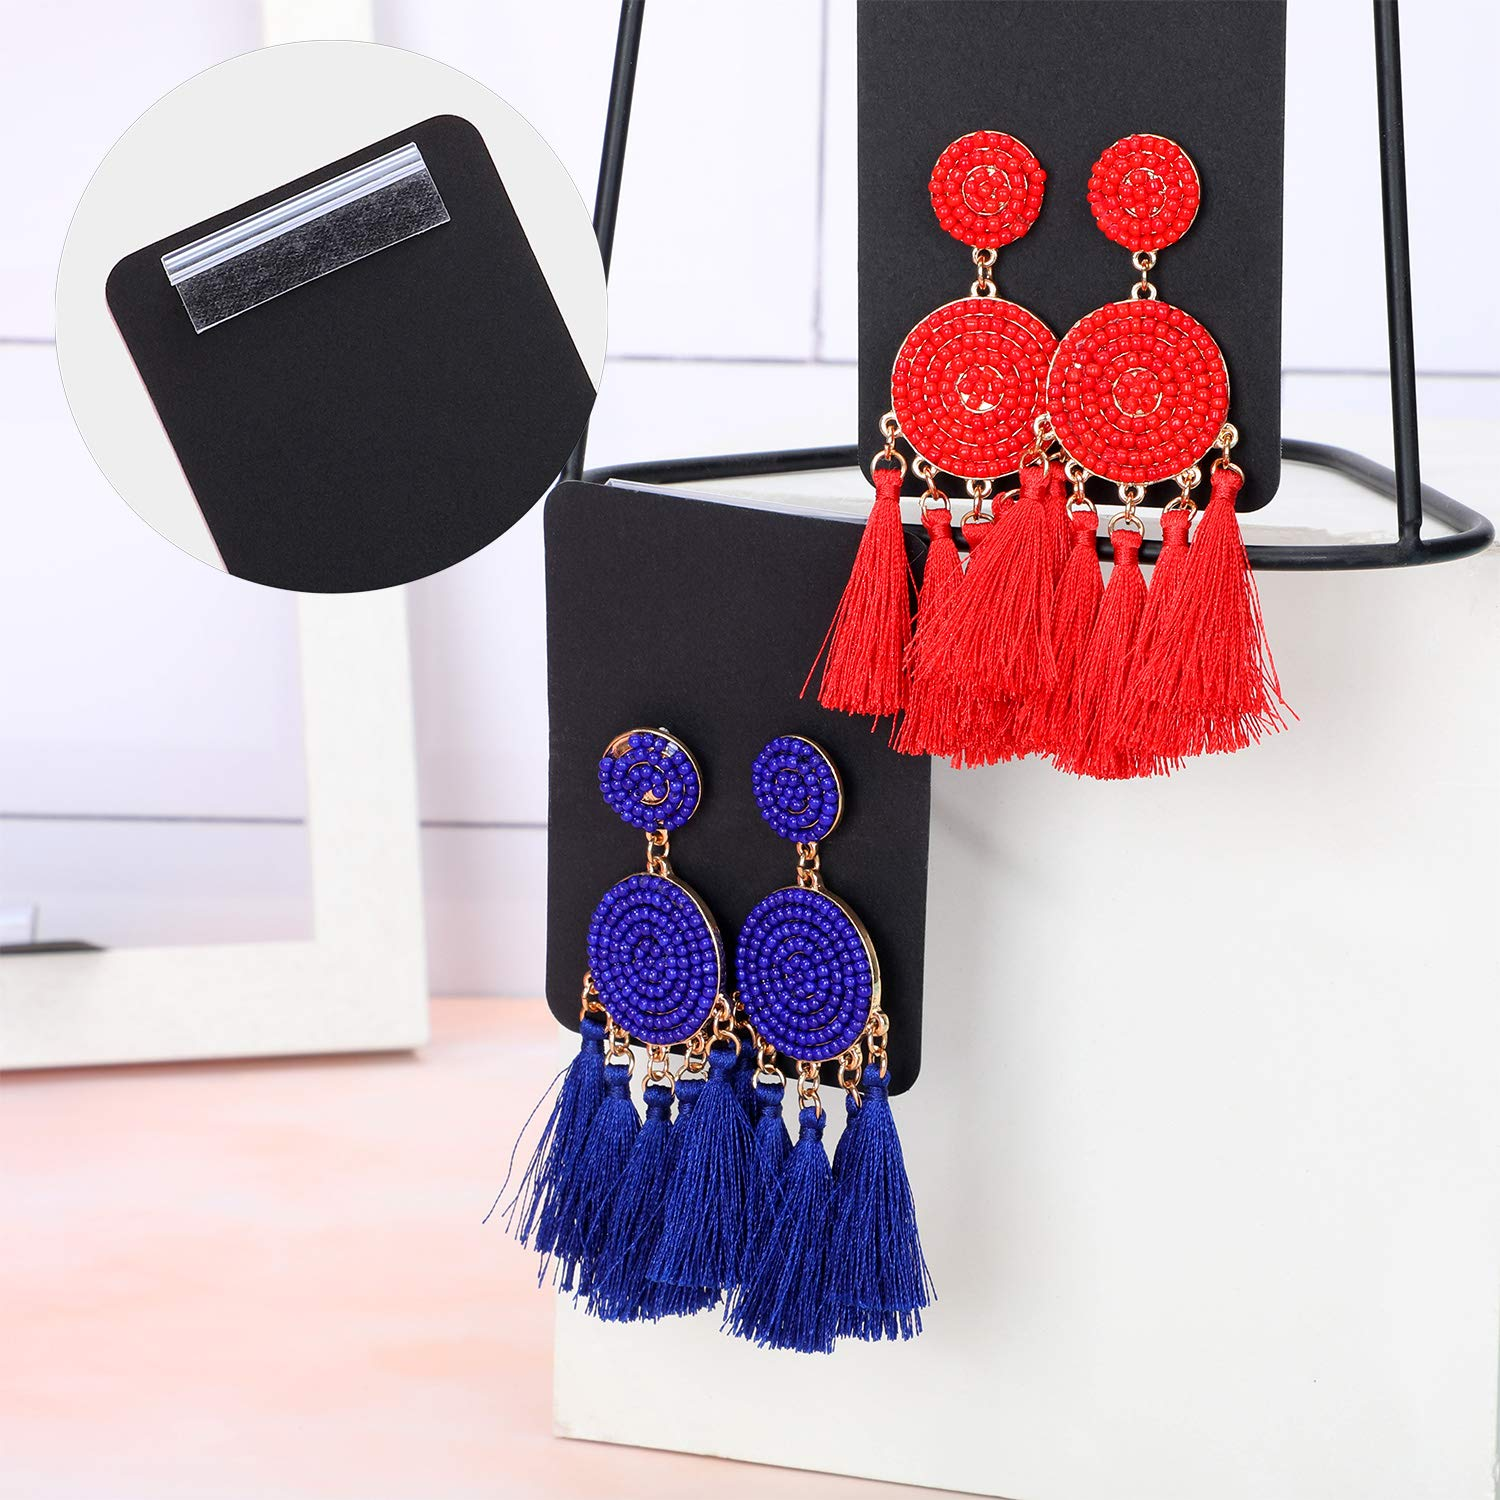 80 Pieces Earring Card Adapter Adhesive Lip Hanger Self-Adhesive Lip Adapter for Jewelry DisplayCard Adapter Adhesive Lip Hanger Self-Adhesive Lip Adapter for Jewelry Display